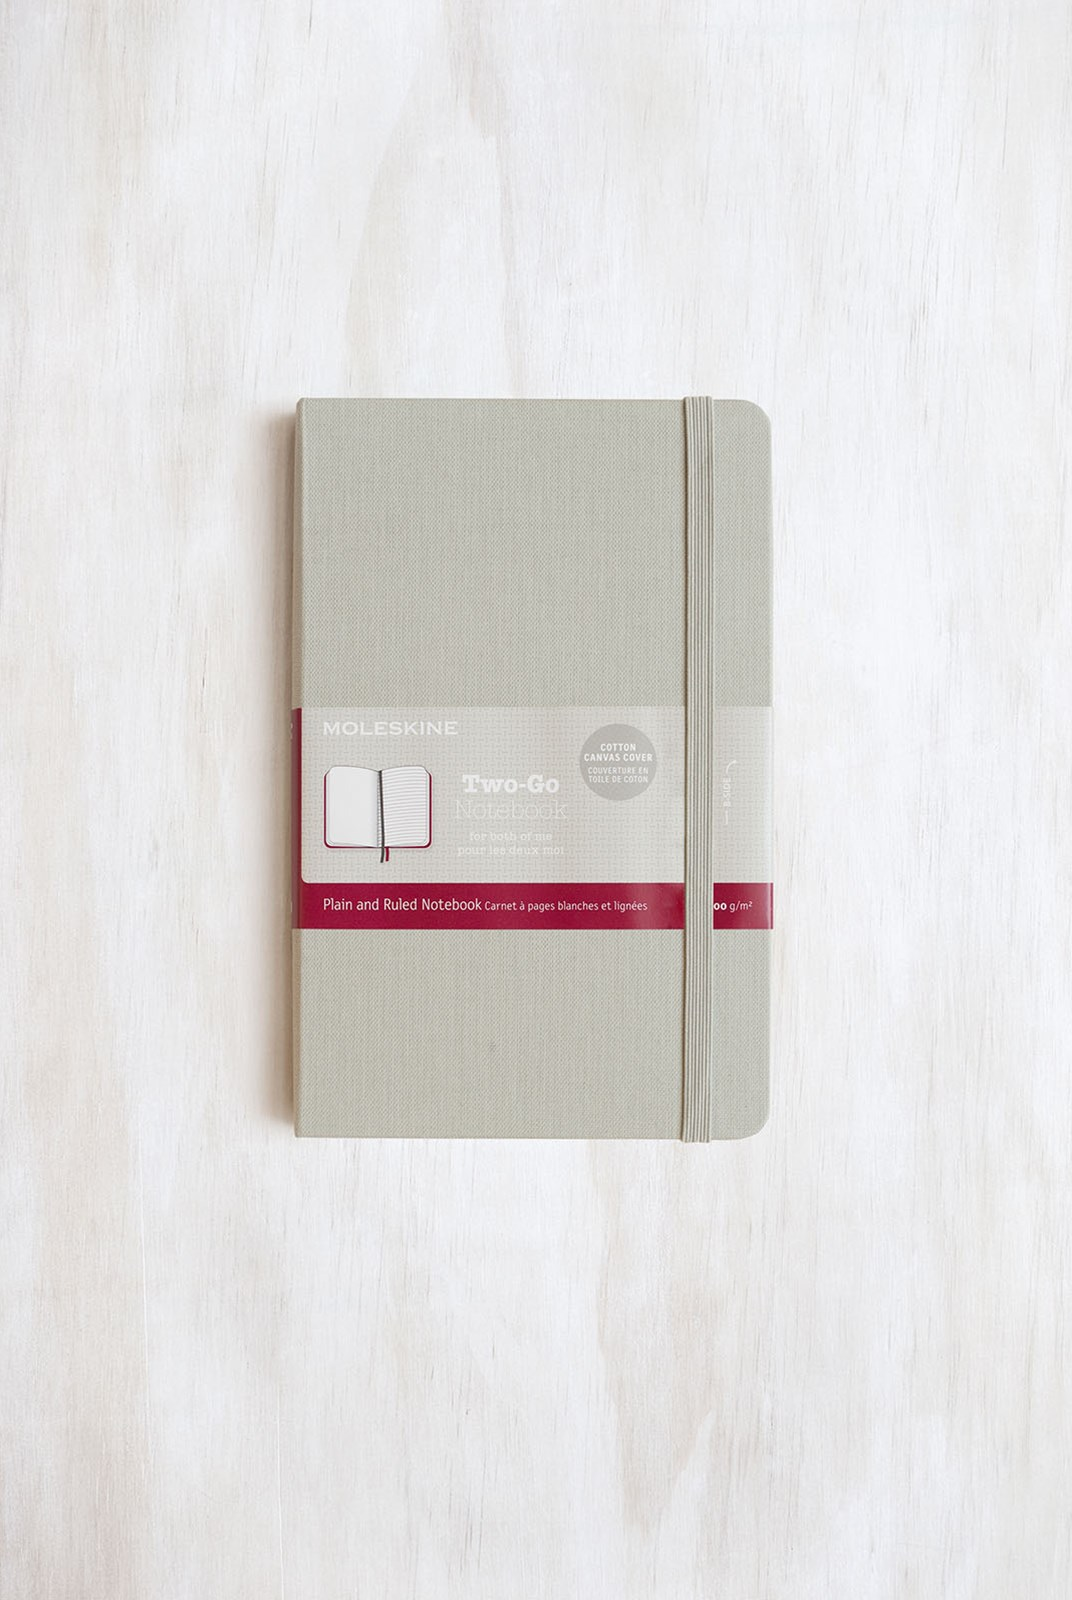 Moleskine - Two-Go Notebook - Canvas Cover - Ruled + Plain - Medium - Ash Grey